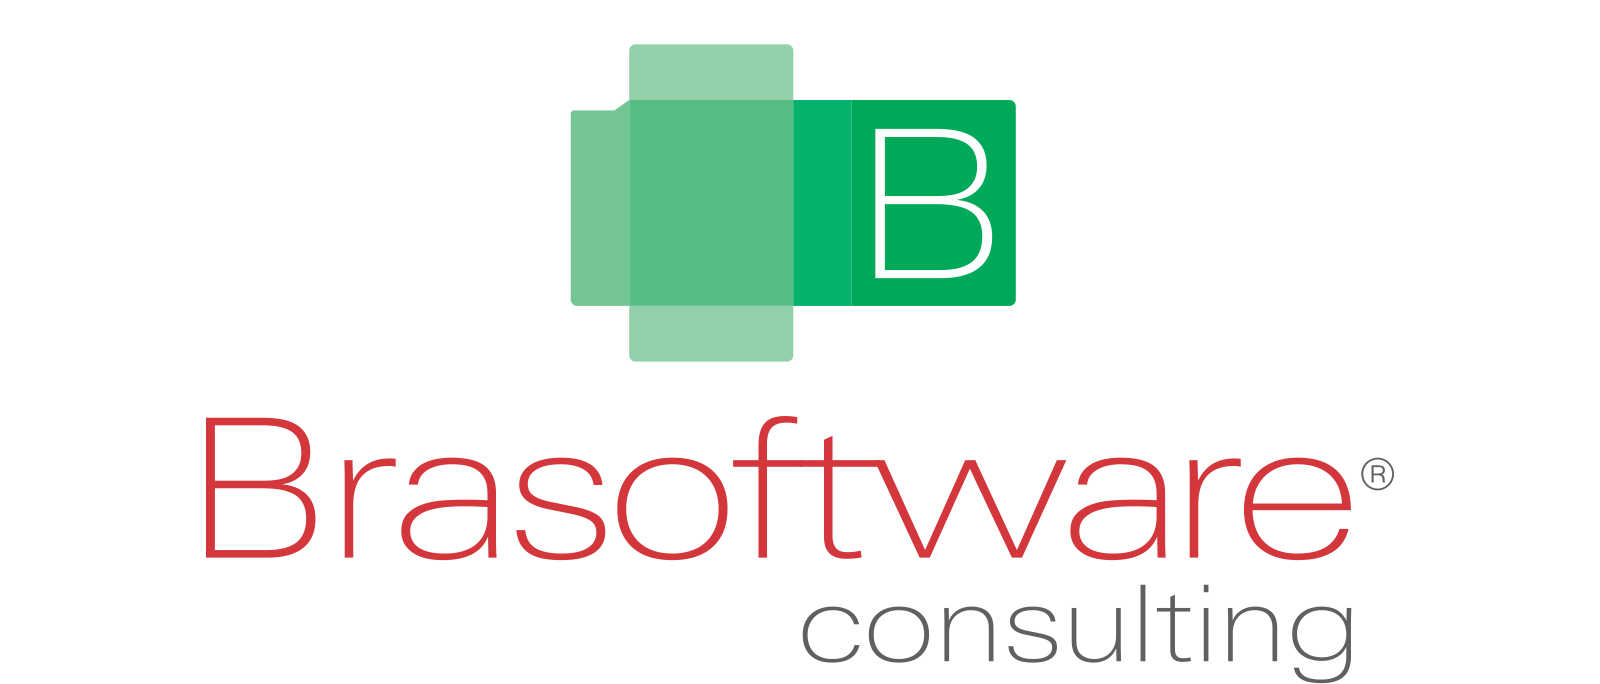 Logo Brasoftware Consulting